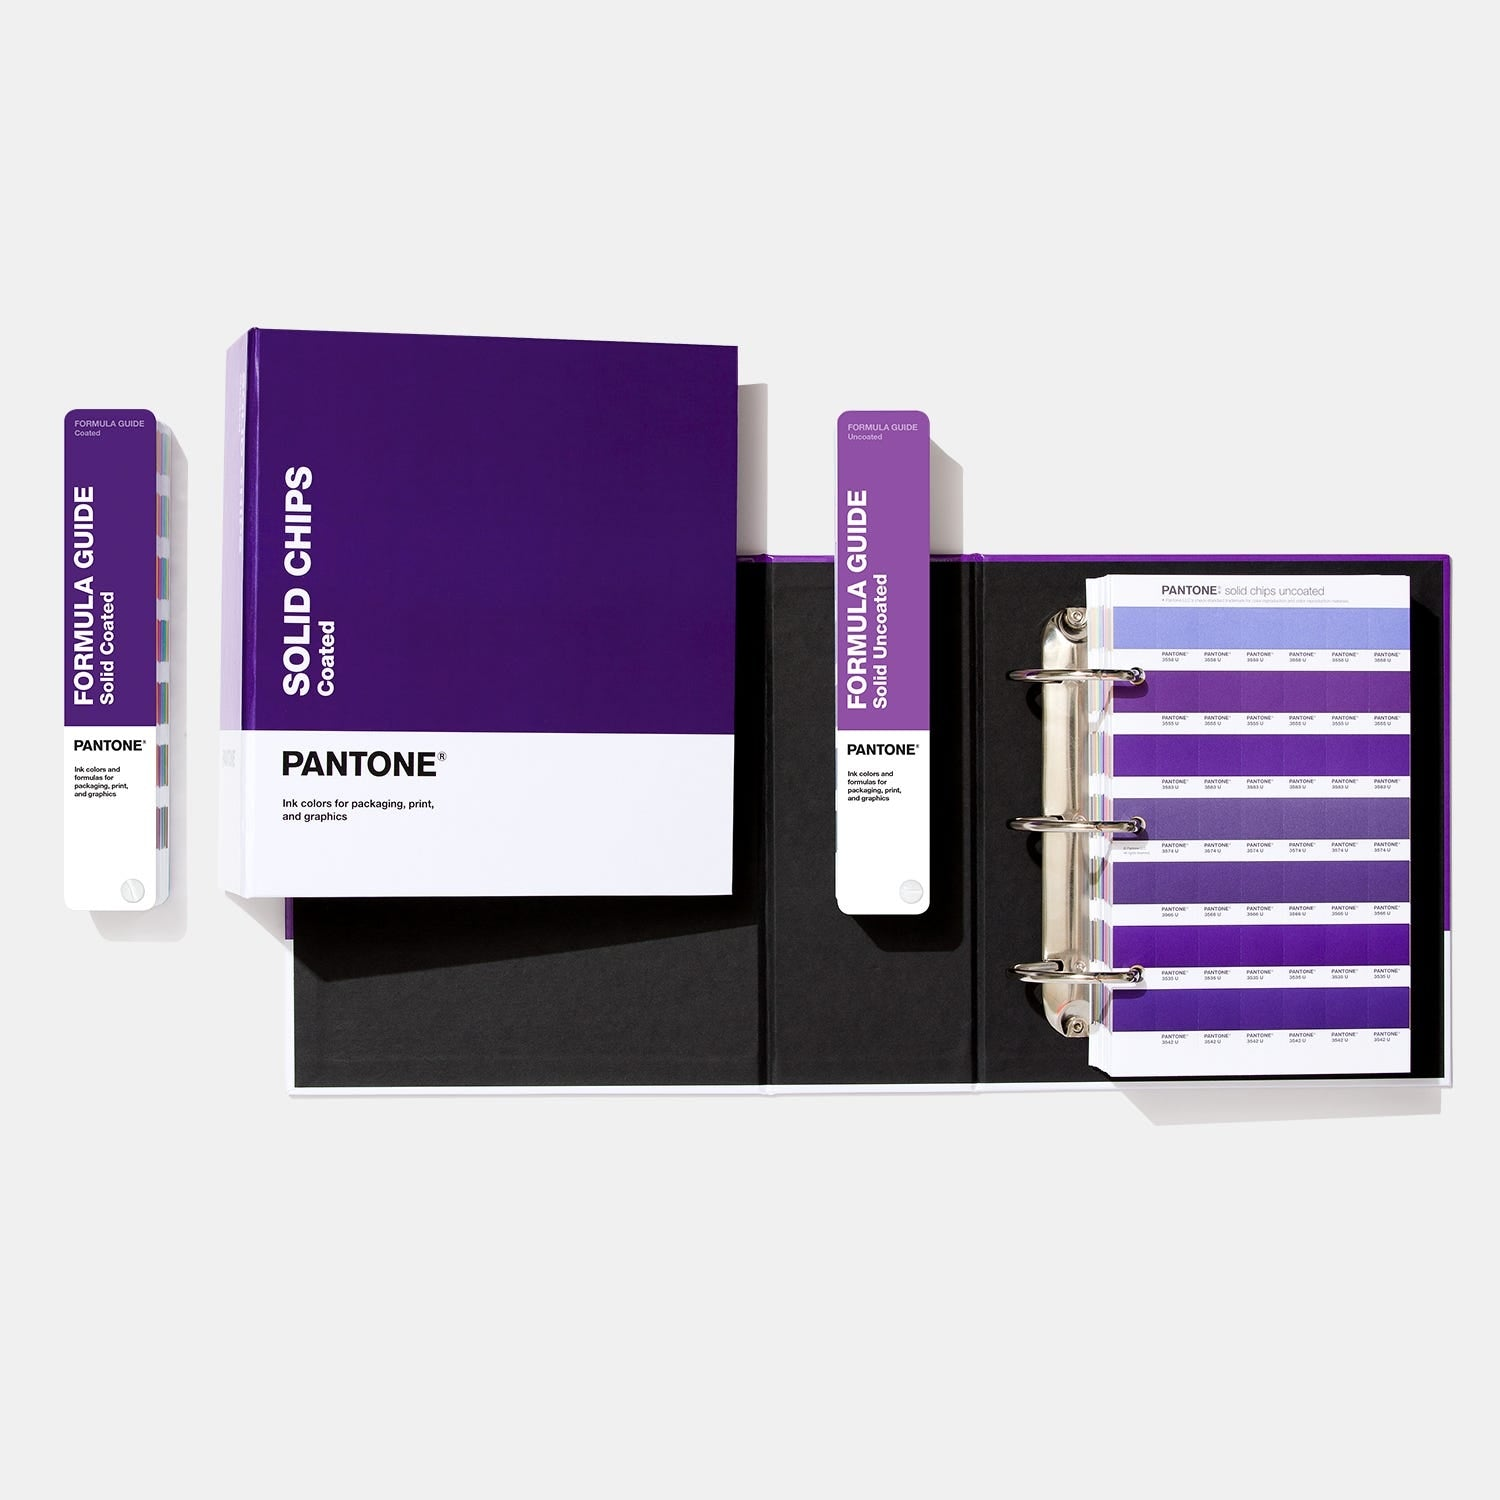 Pantone Solid Chips Binders and Formula Guides Bundle